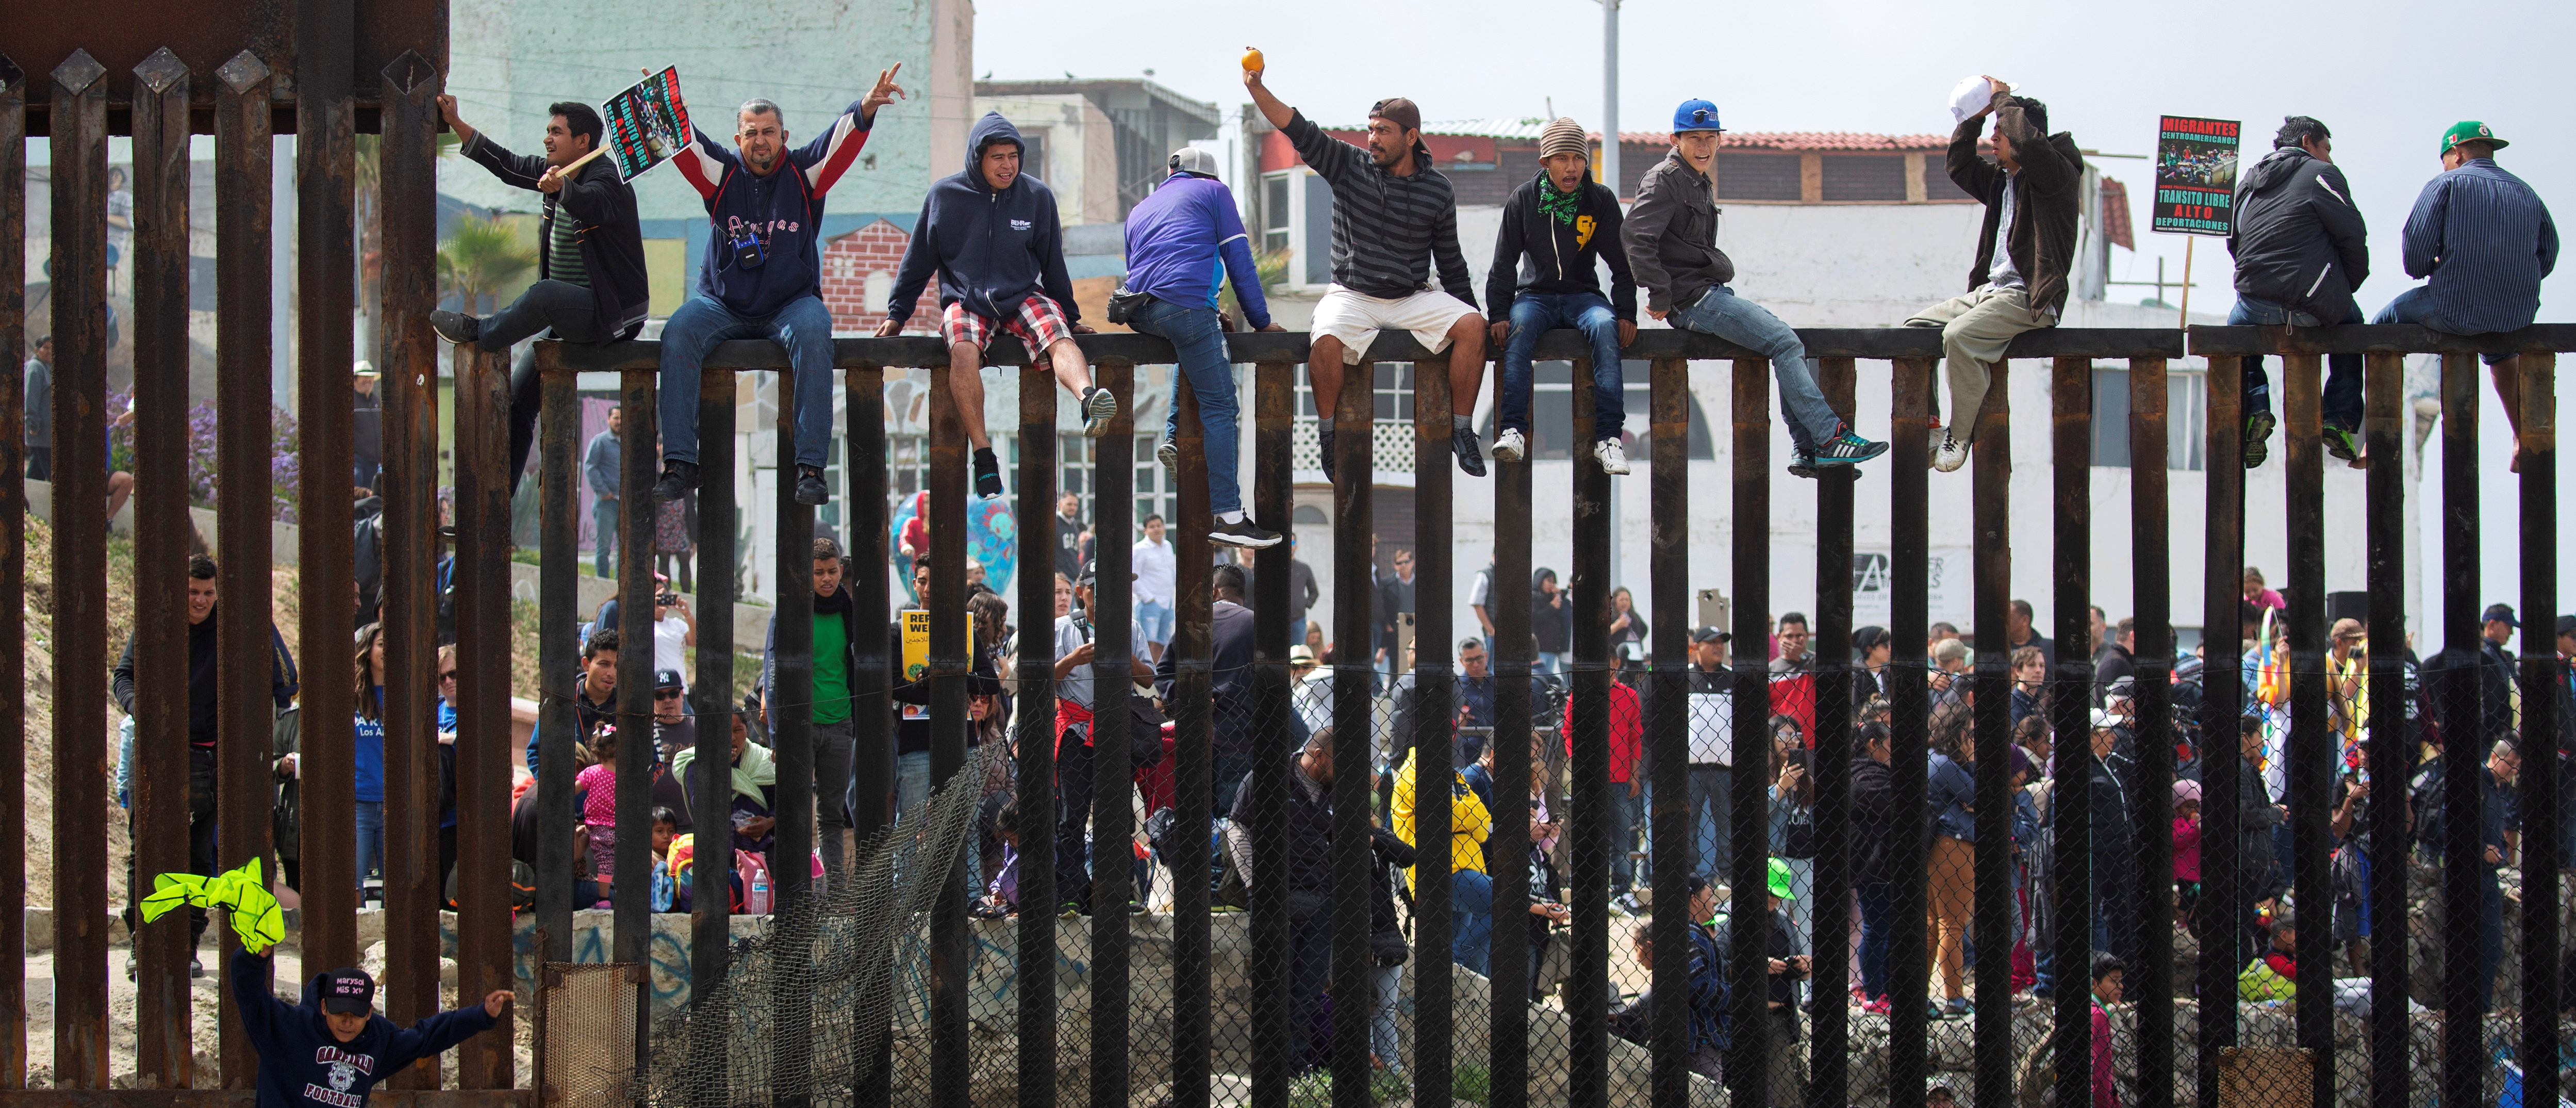 People in Mexico climb the border wall fence as a caravan of migrants and supporters reached the United States-Mexico border near San Diego, California, U.S., April 29, 2018. REUTERS/Mike Blake